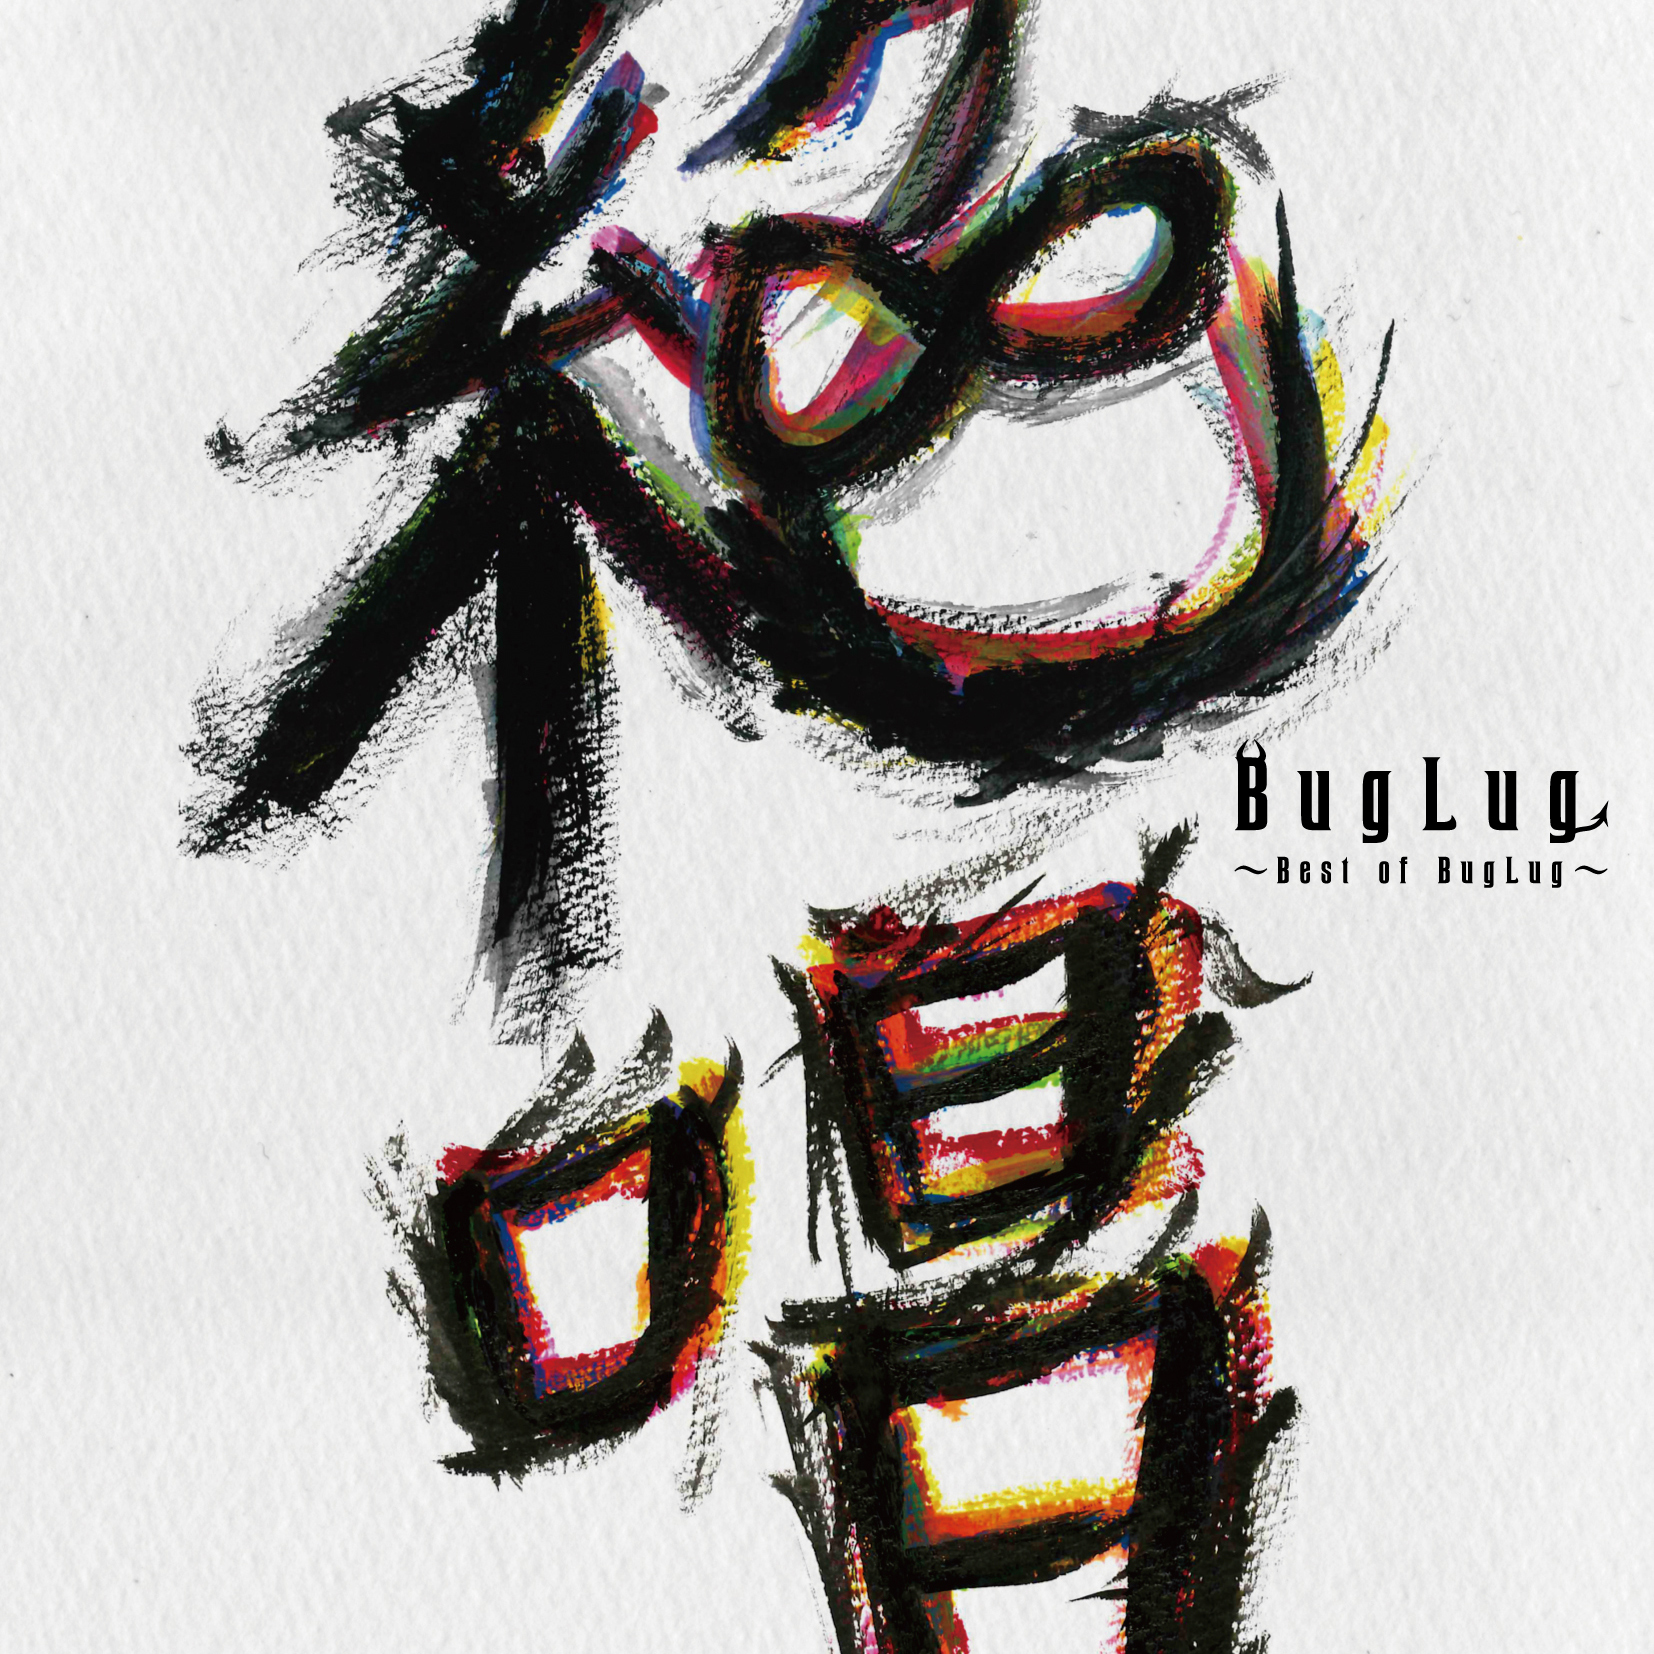 BugLug『絶唱~Best of BugLug~』